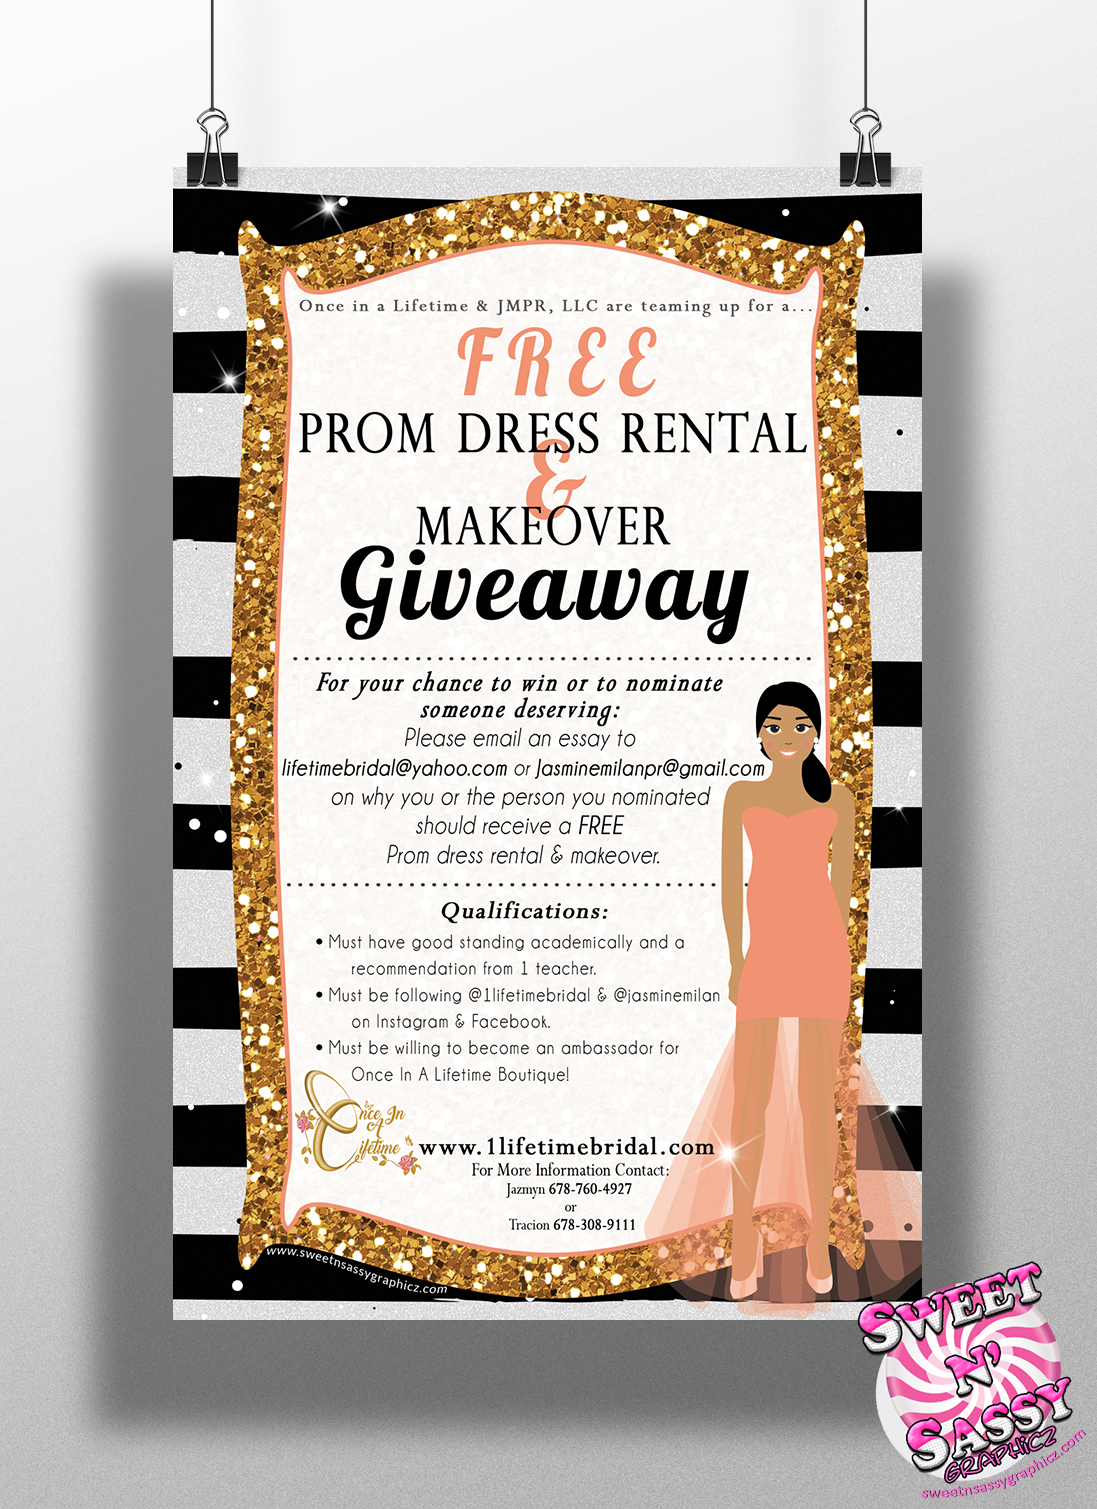 Lifetime Bridal Dress Giveaway Flyer